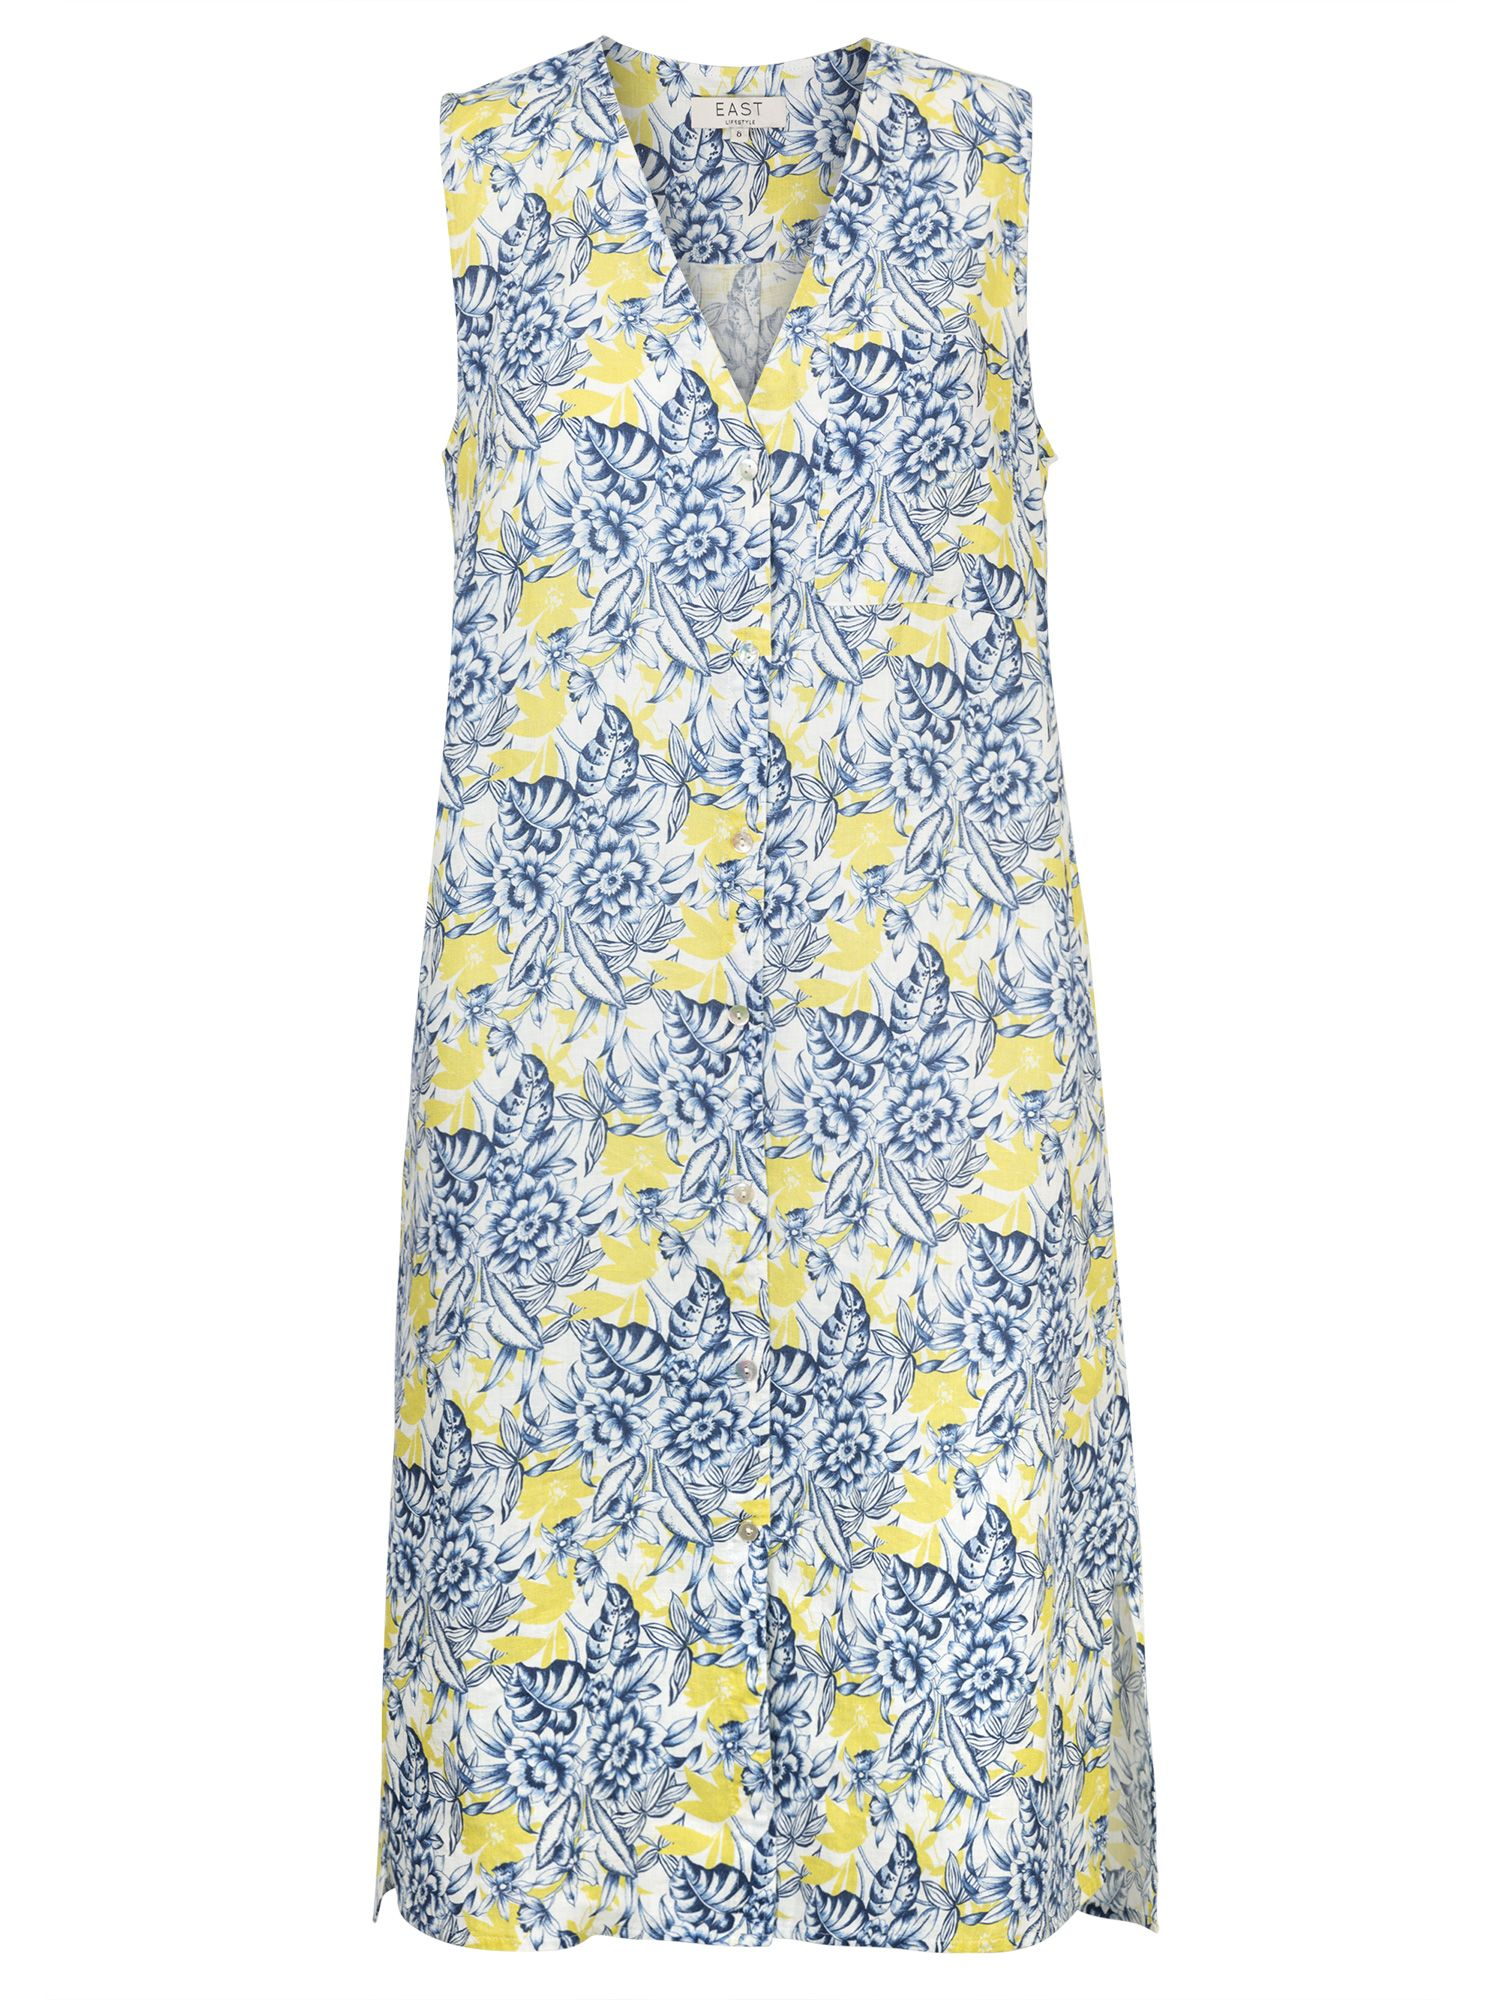 East Linen Sardinia Dress (Mika), Lemon